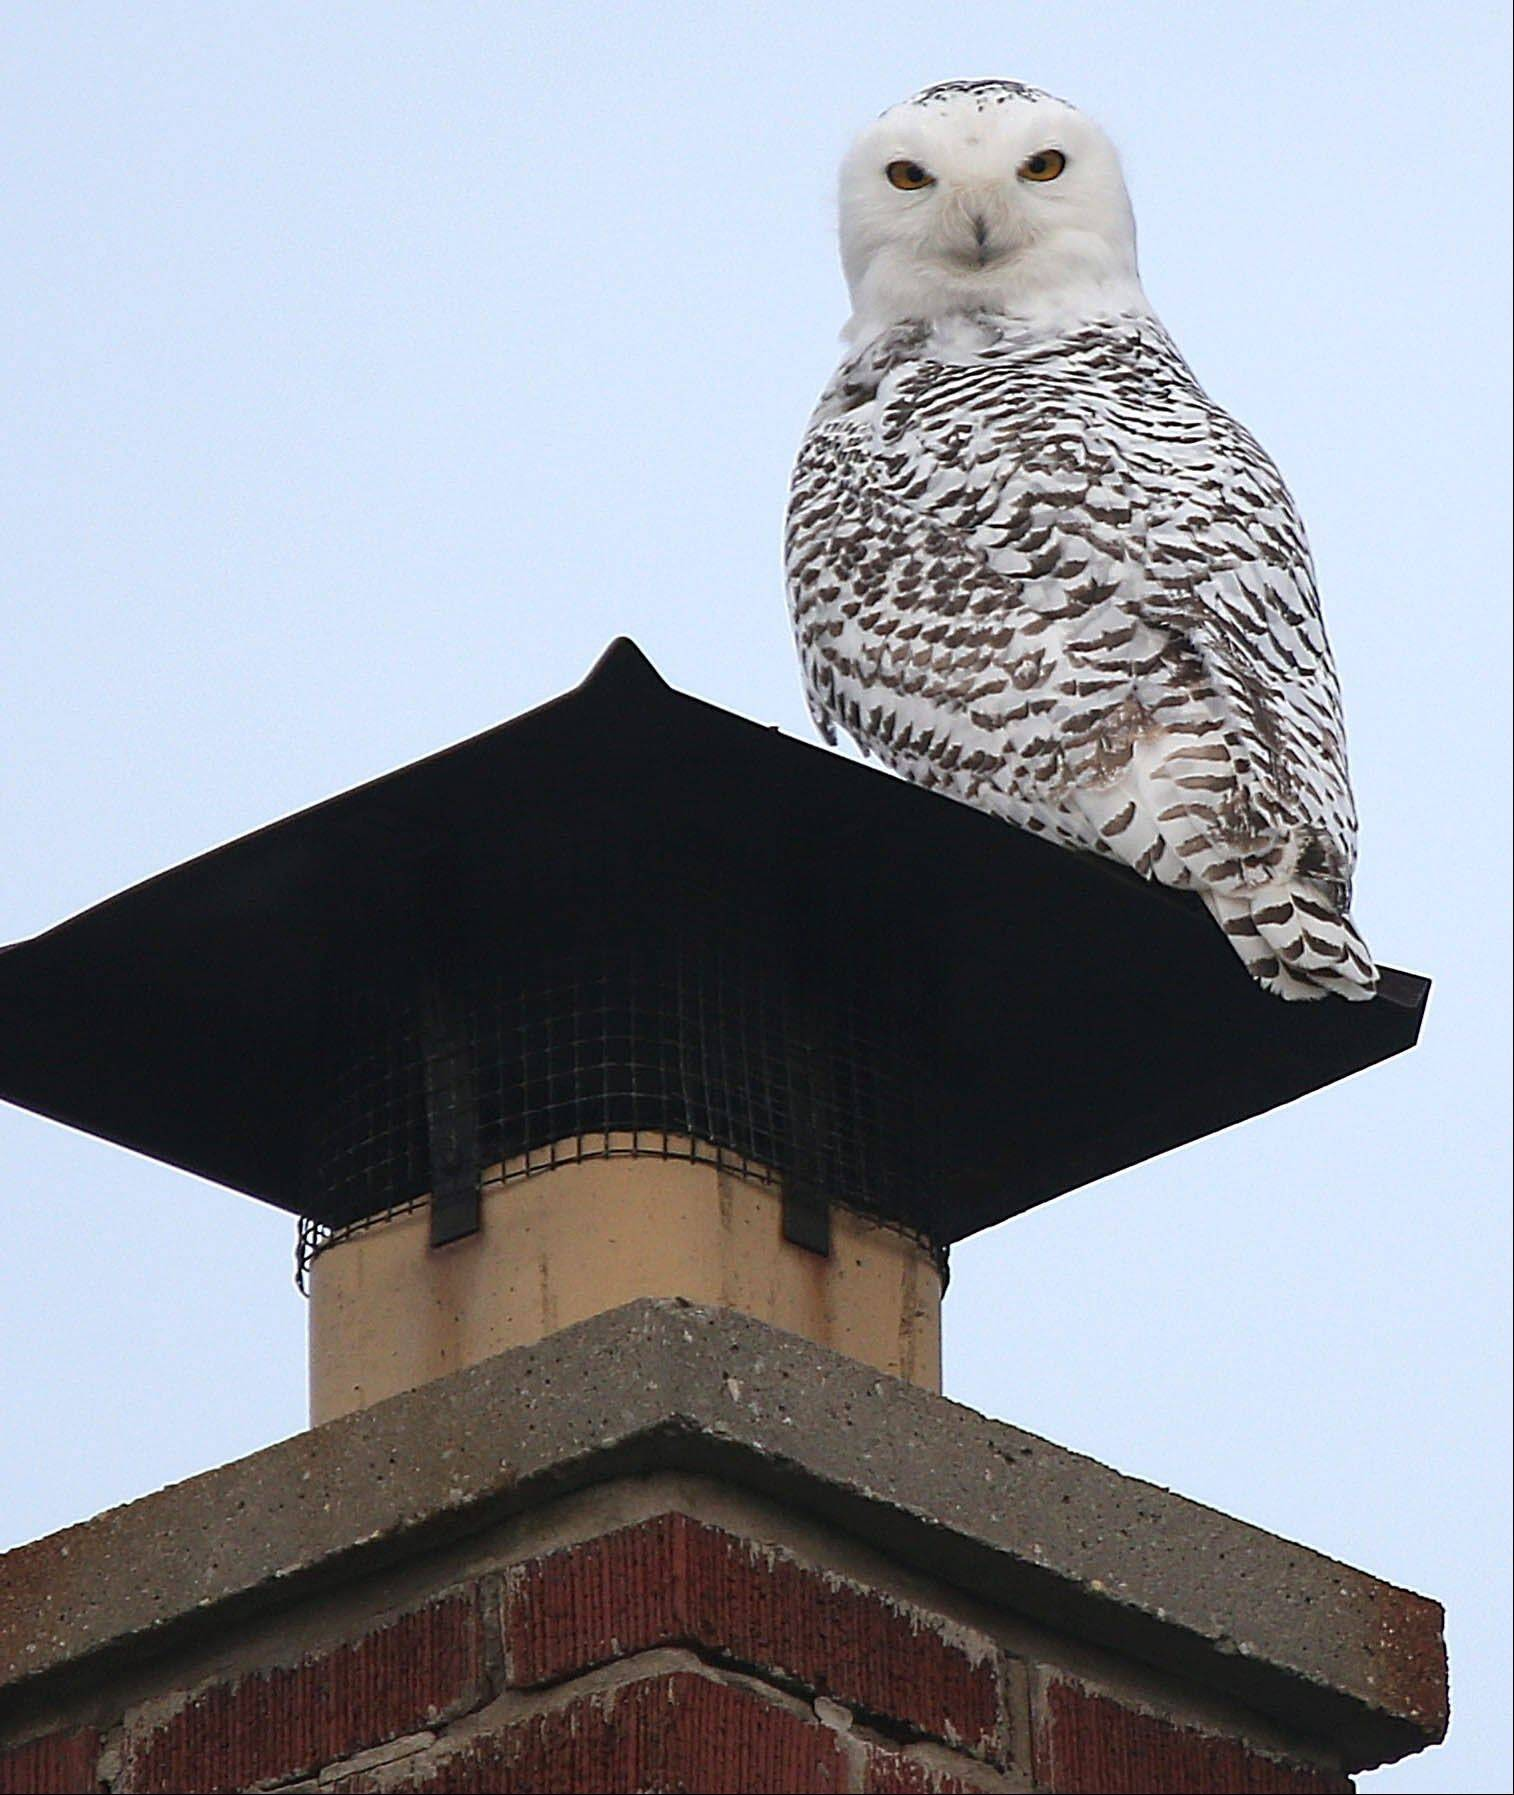 A snowy owl sits on the chimney of a home in Eggertsville, N.Y.